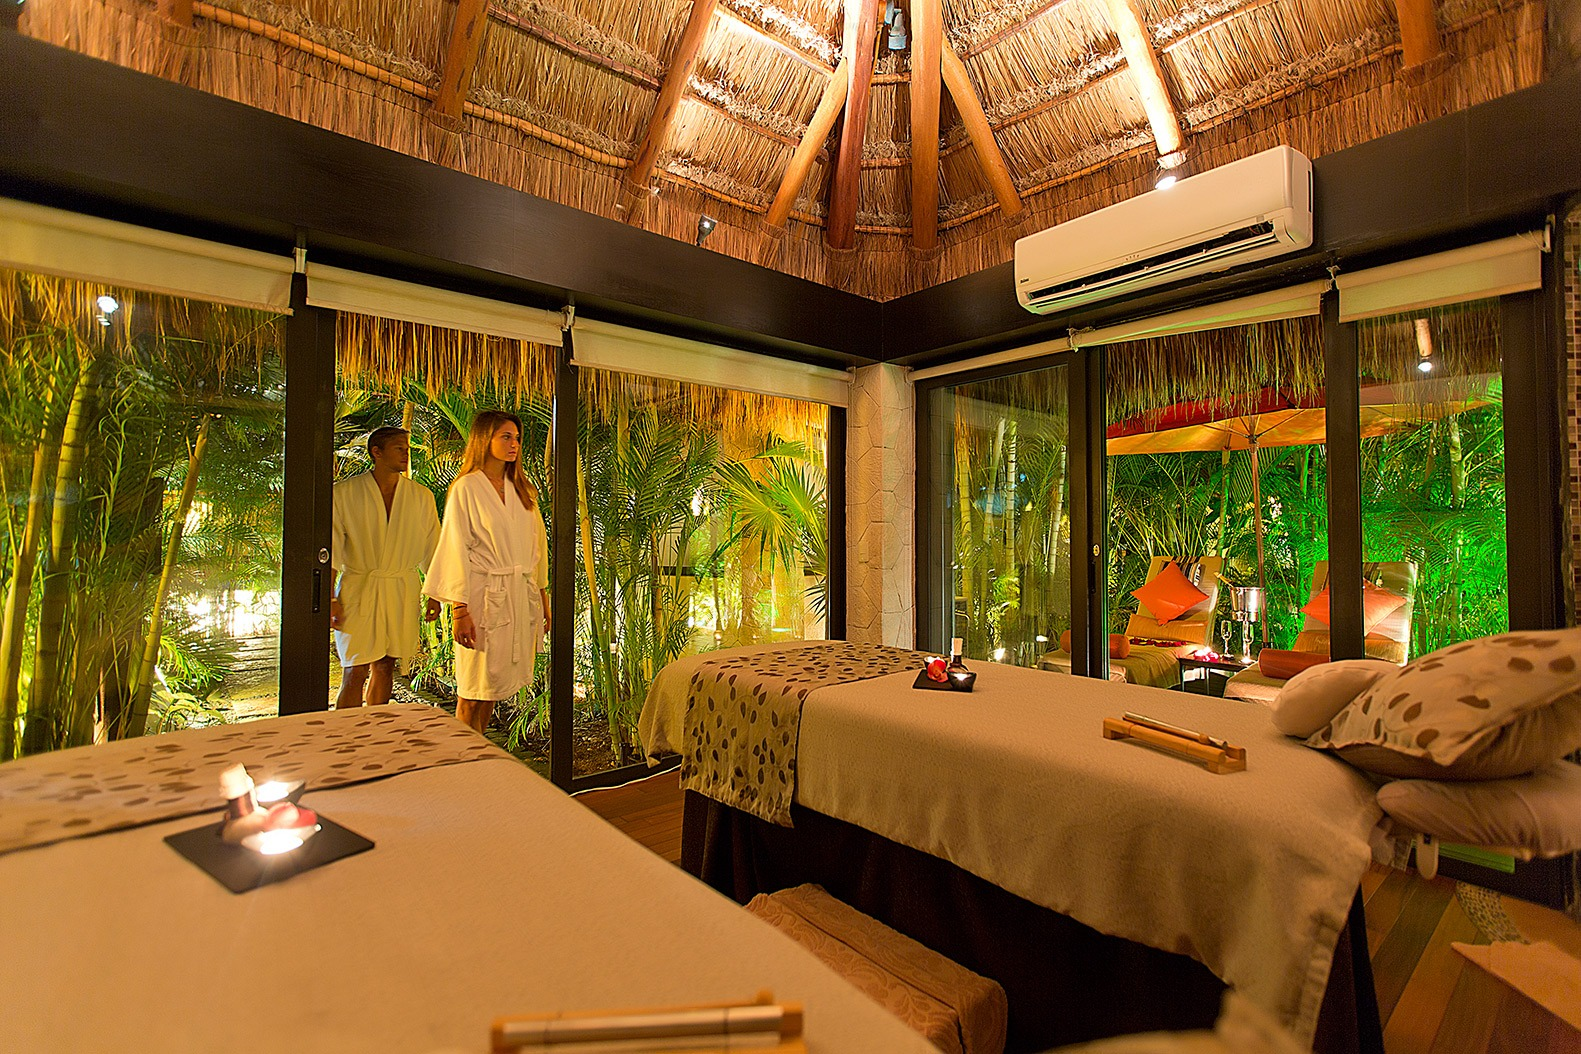 Wellness Activities at Villa Group's Cancun Resort